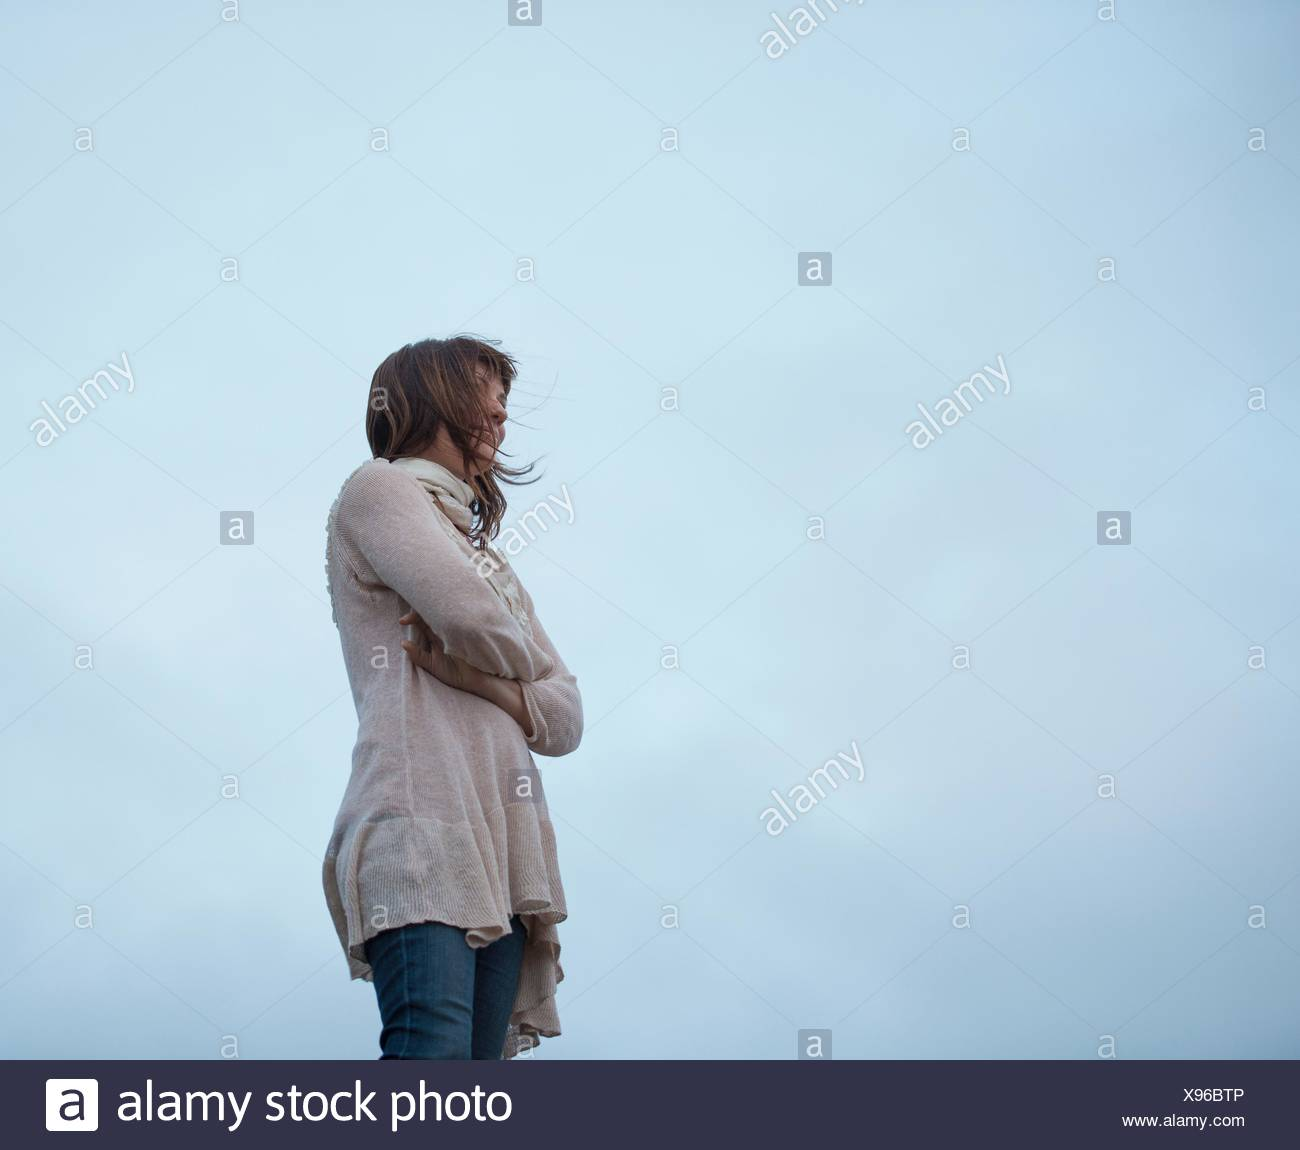 Low angle view of woman with arms folded and overcast sky - Stock Image